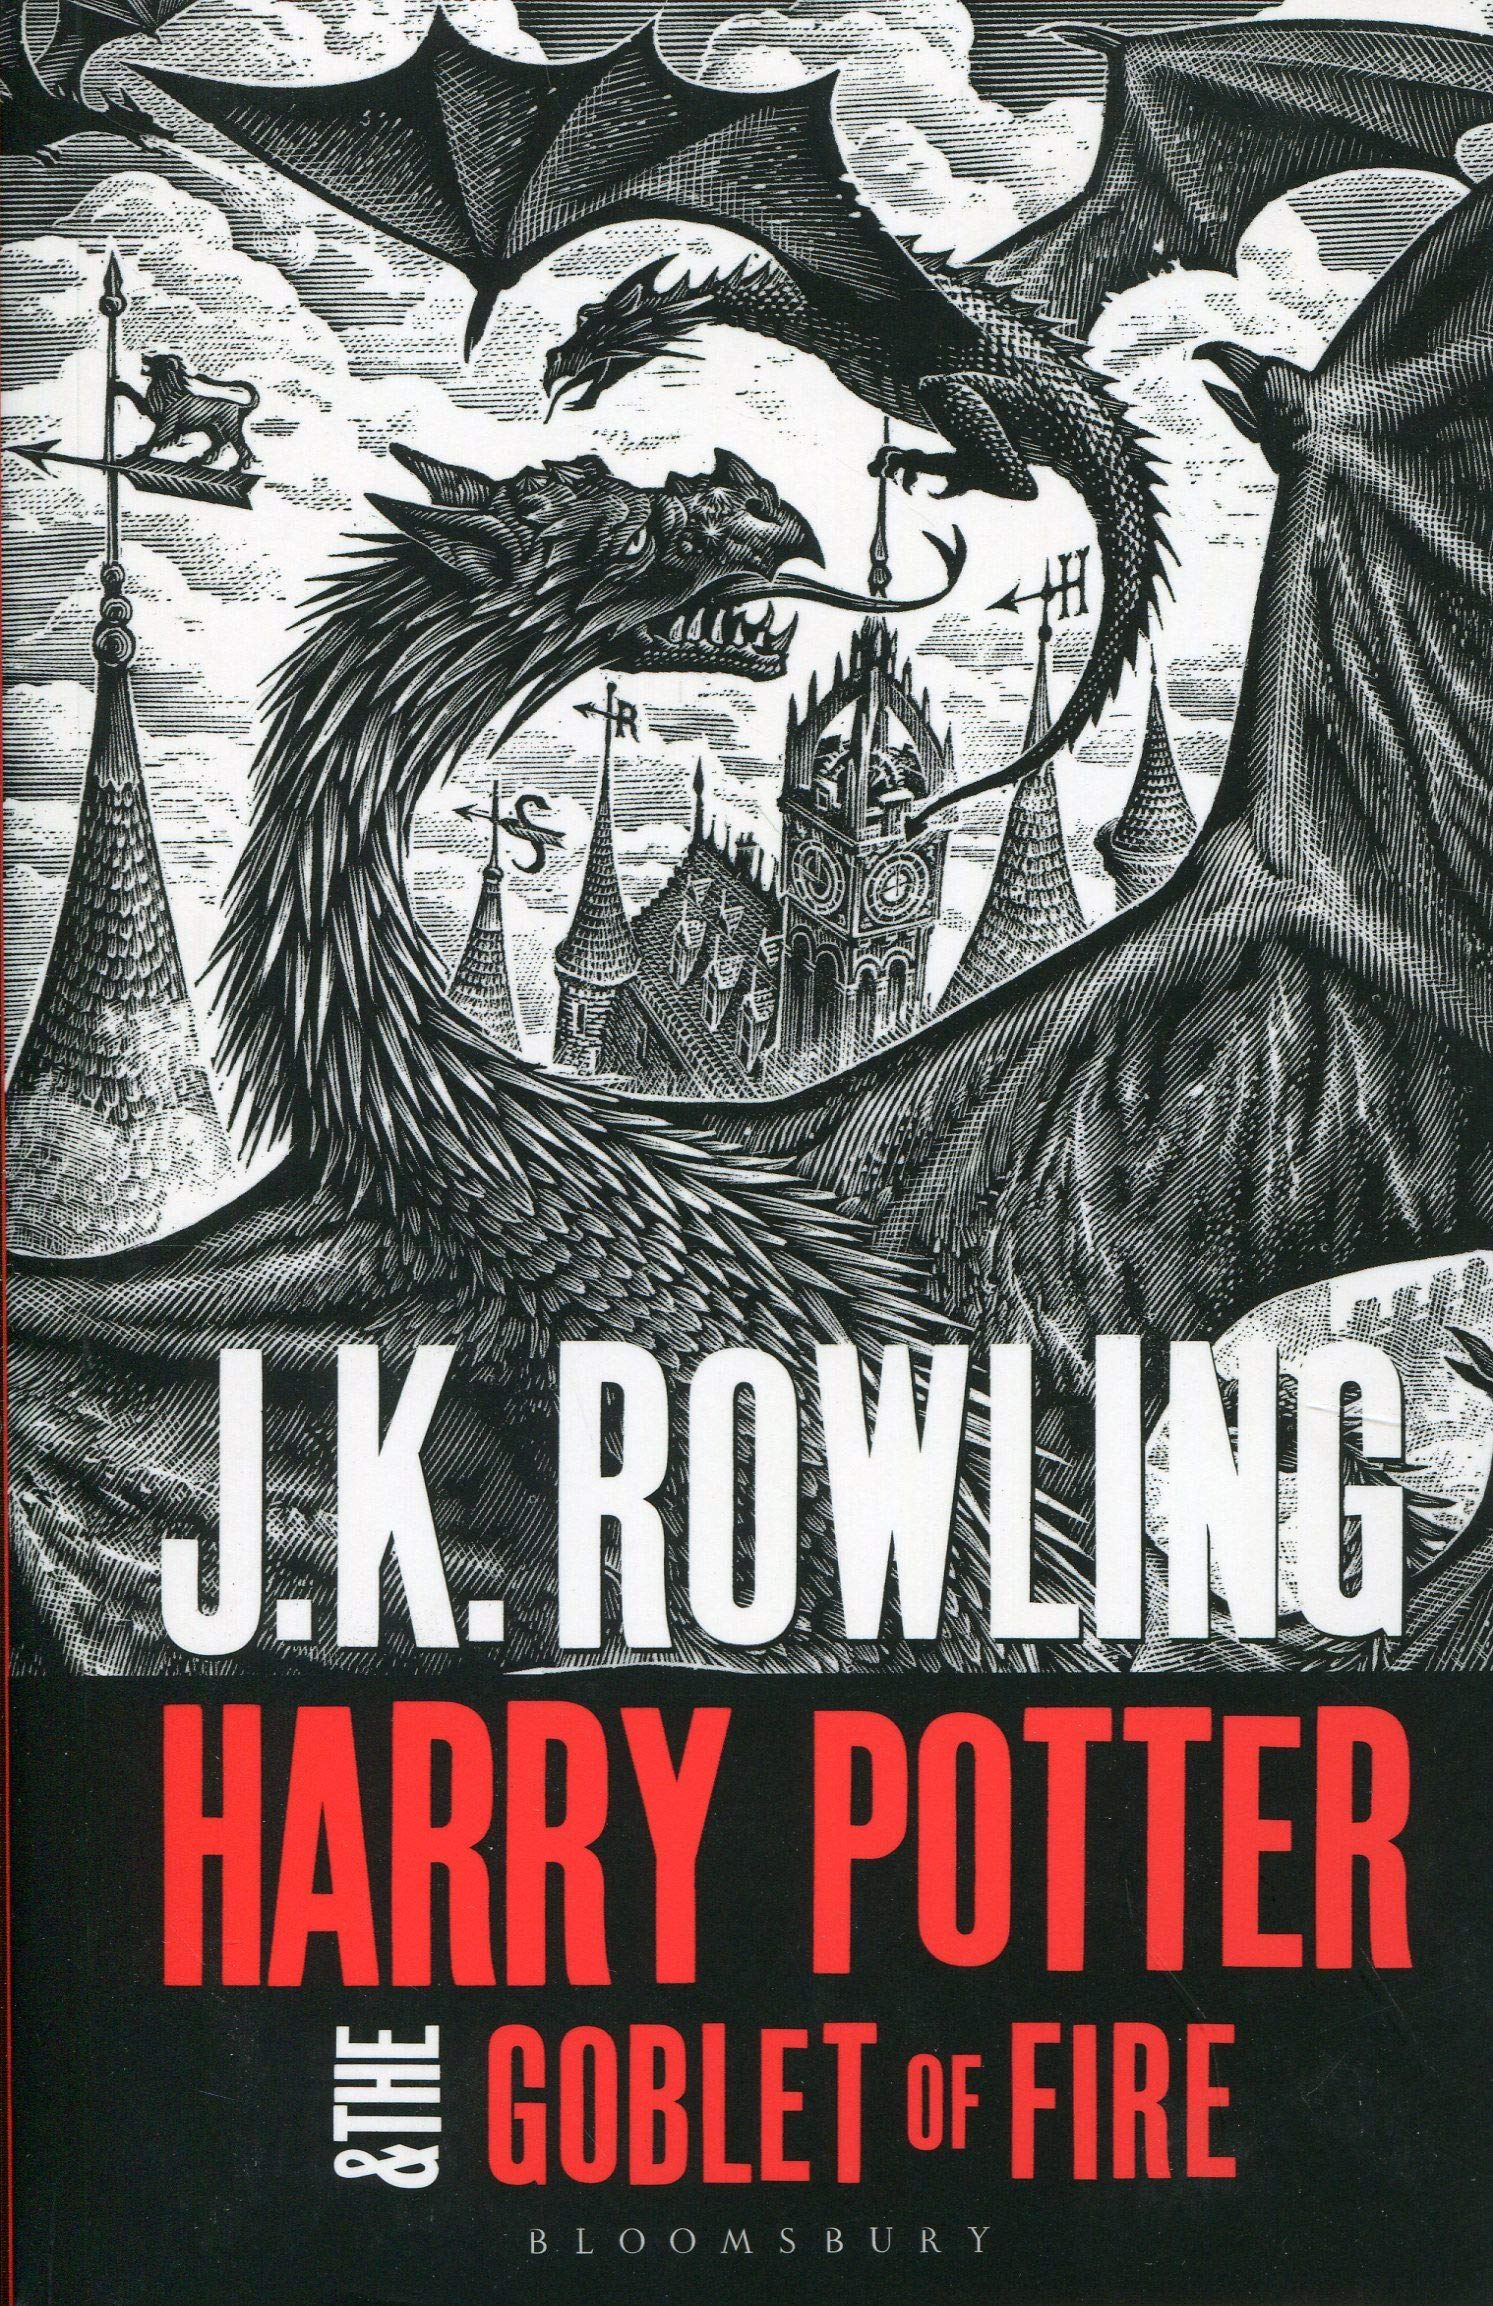 Harry Potter And The Goblet Of Fire (Harry Potter 4): Amazon ...